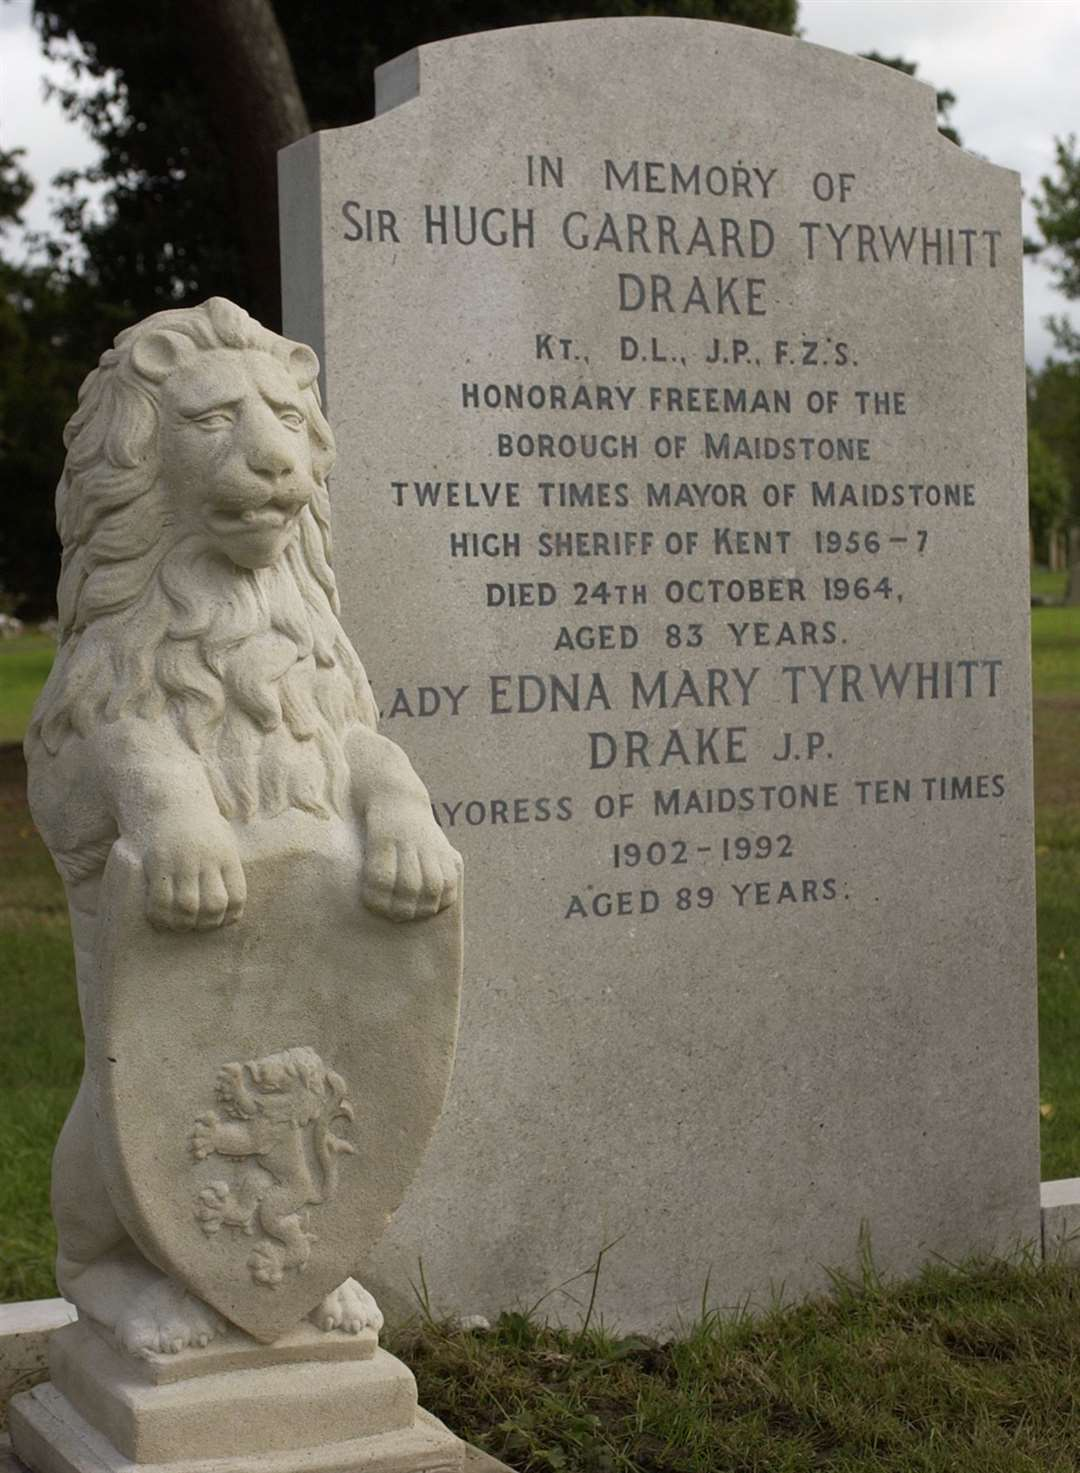 Sir Garrard is buried in Maidstone Cemetery with his wife, Lady Edna